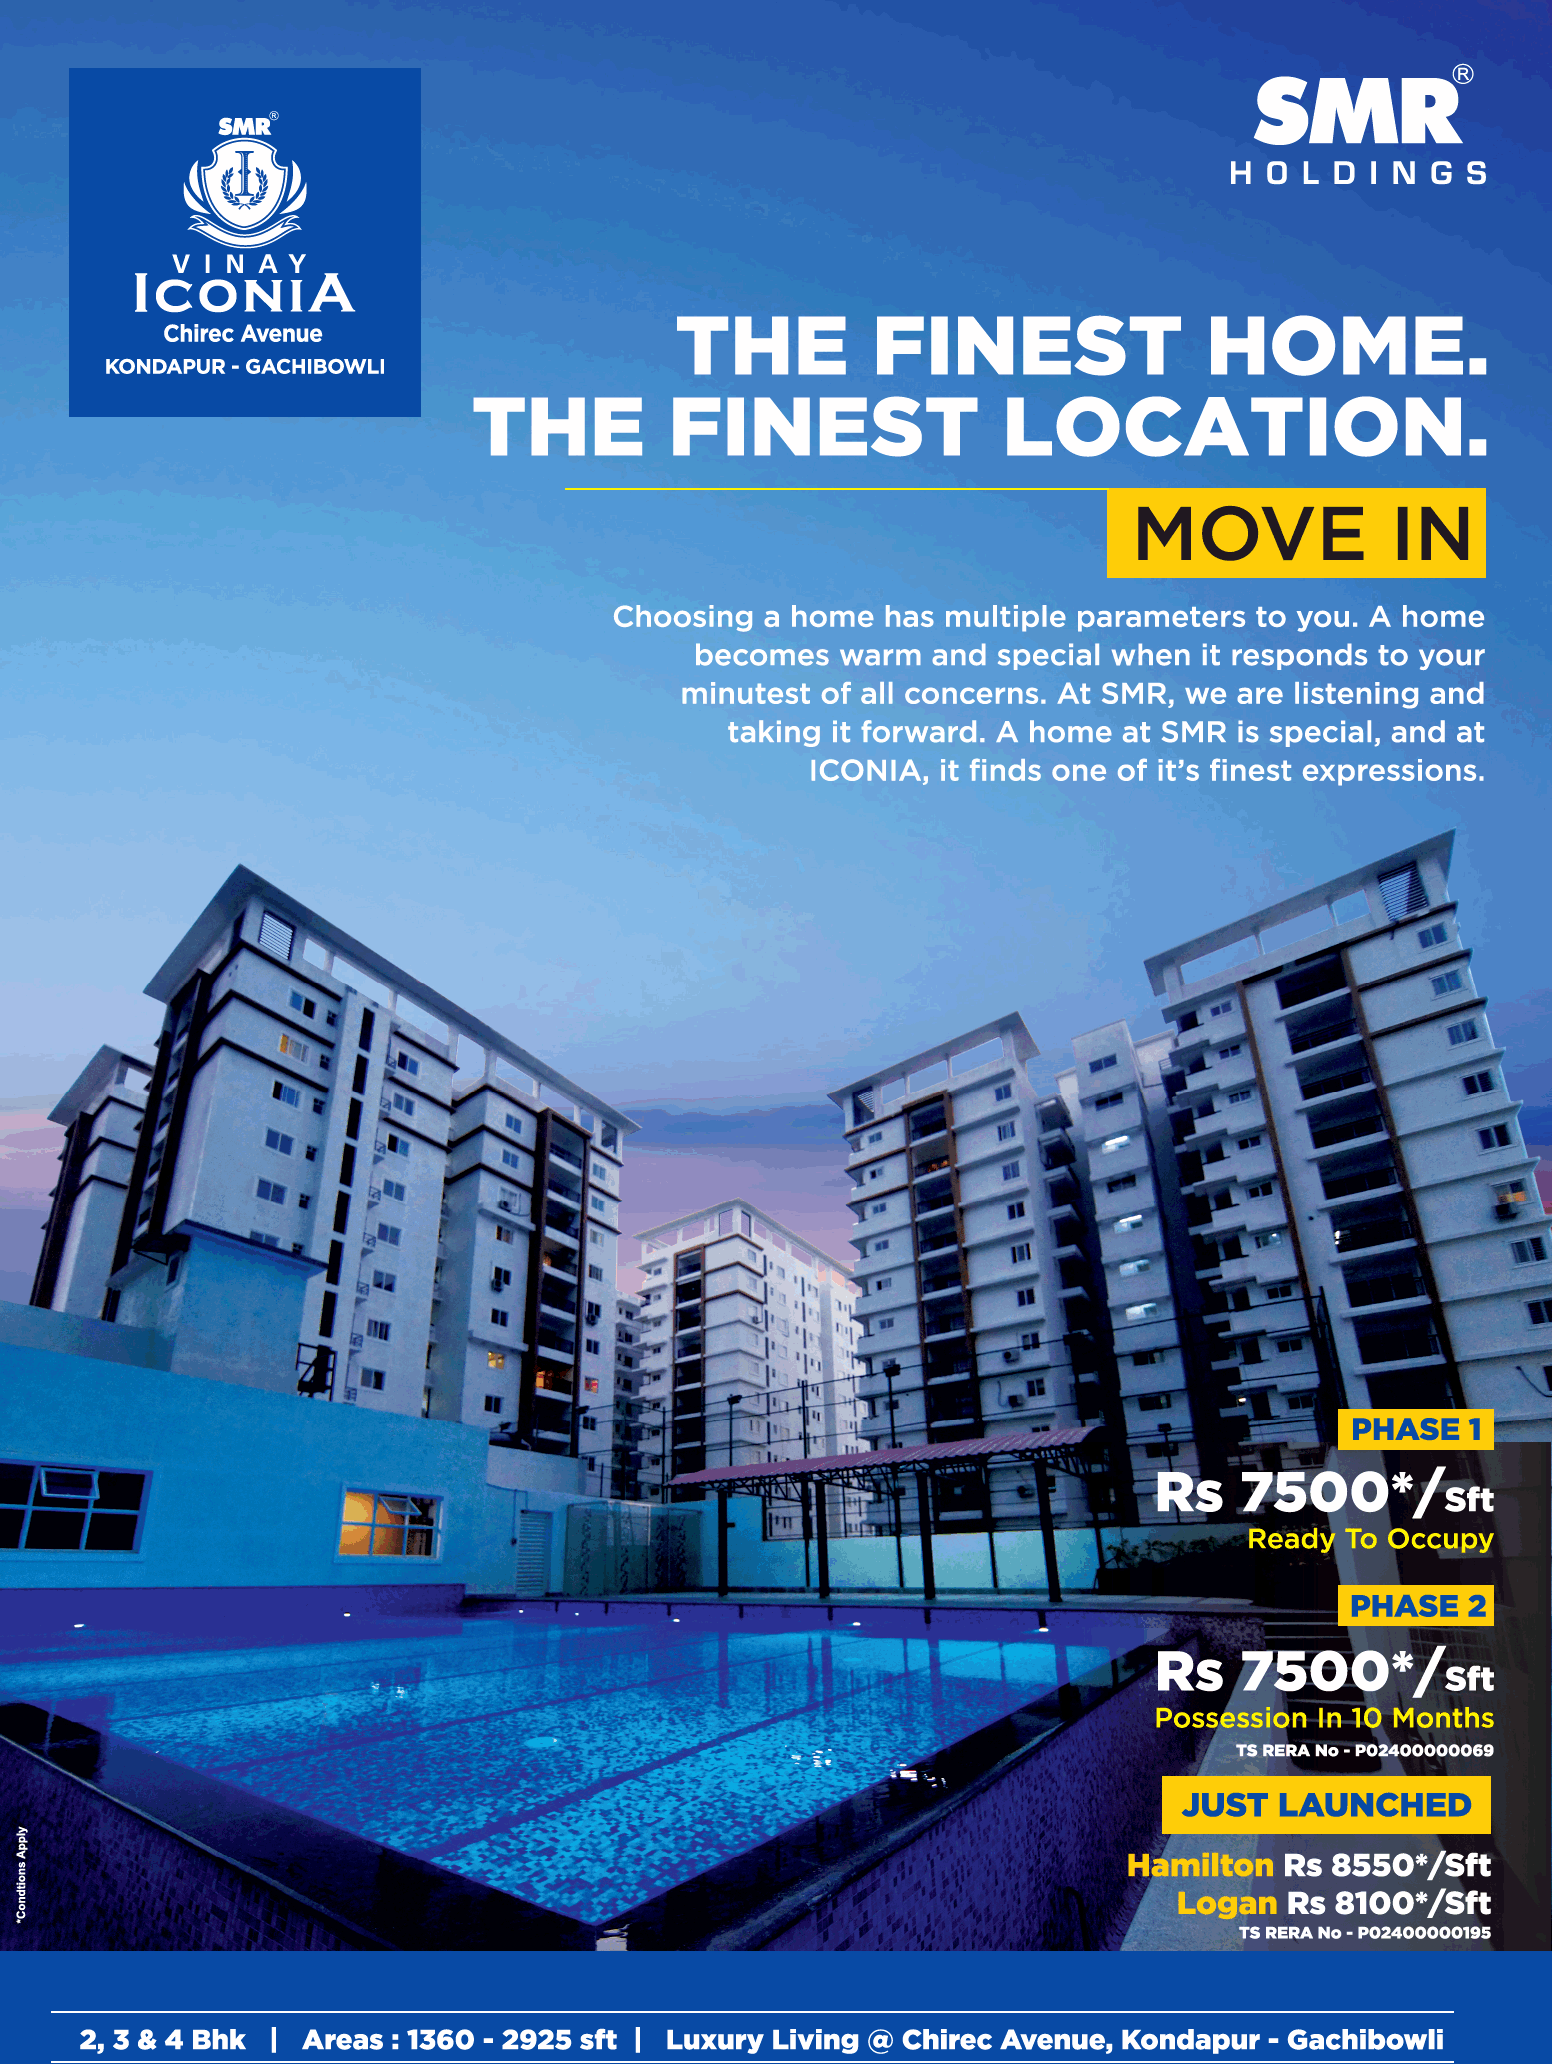 The finest home at the finest location SMR Vinay Iconia Hyderabad